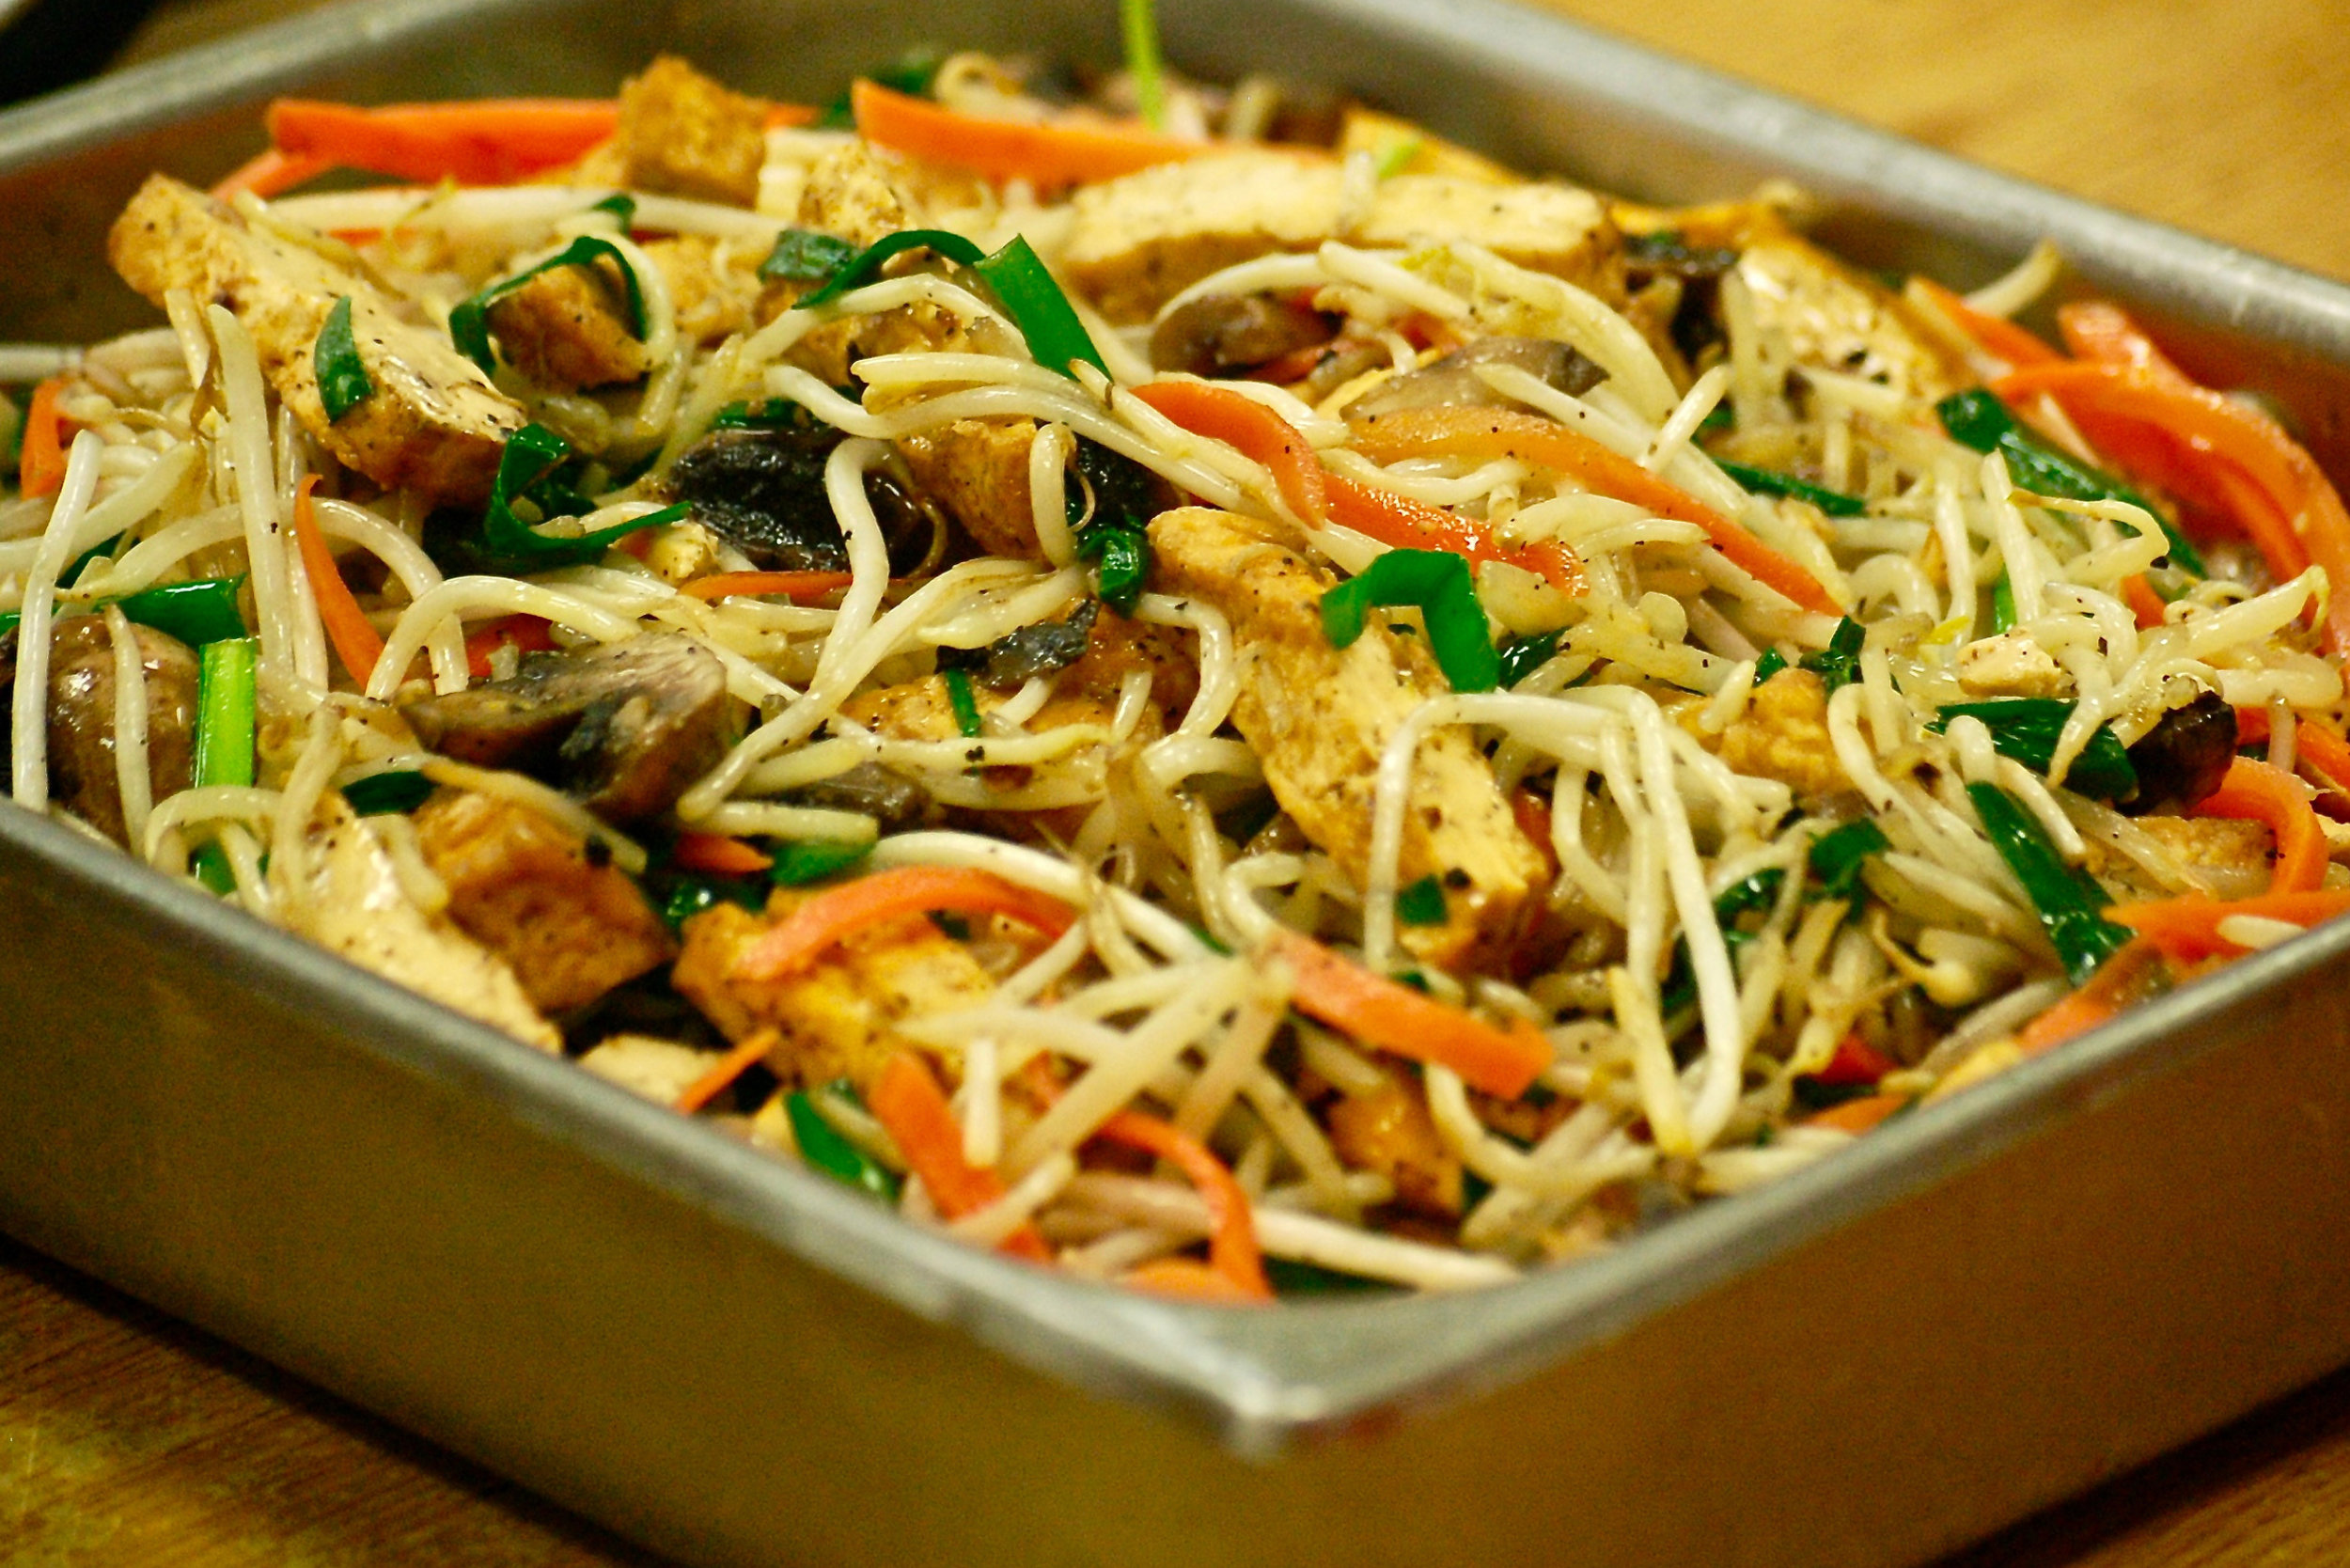 Tofu and Veggie Noodles